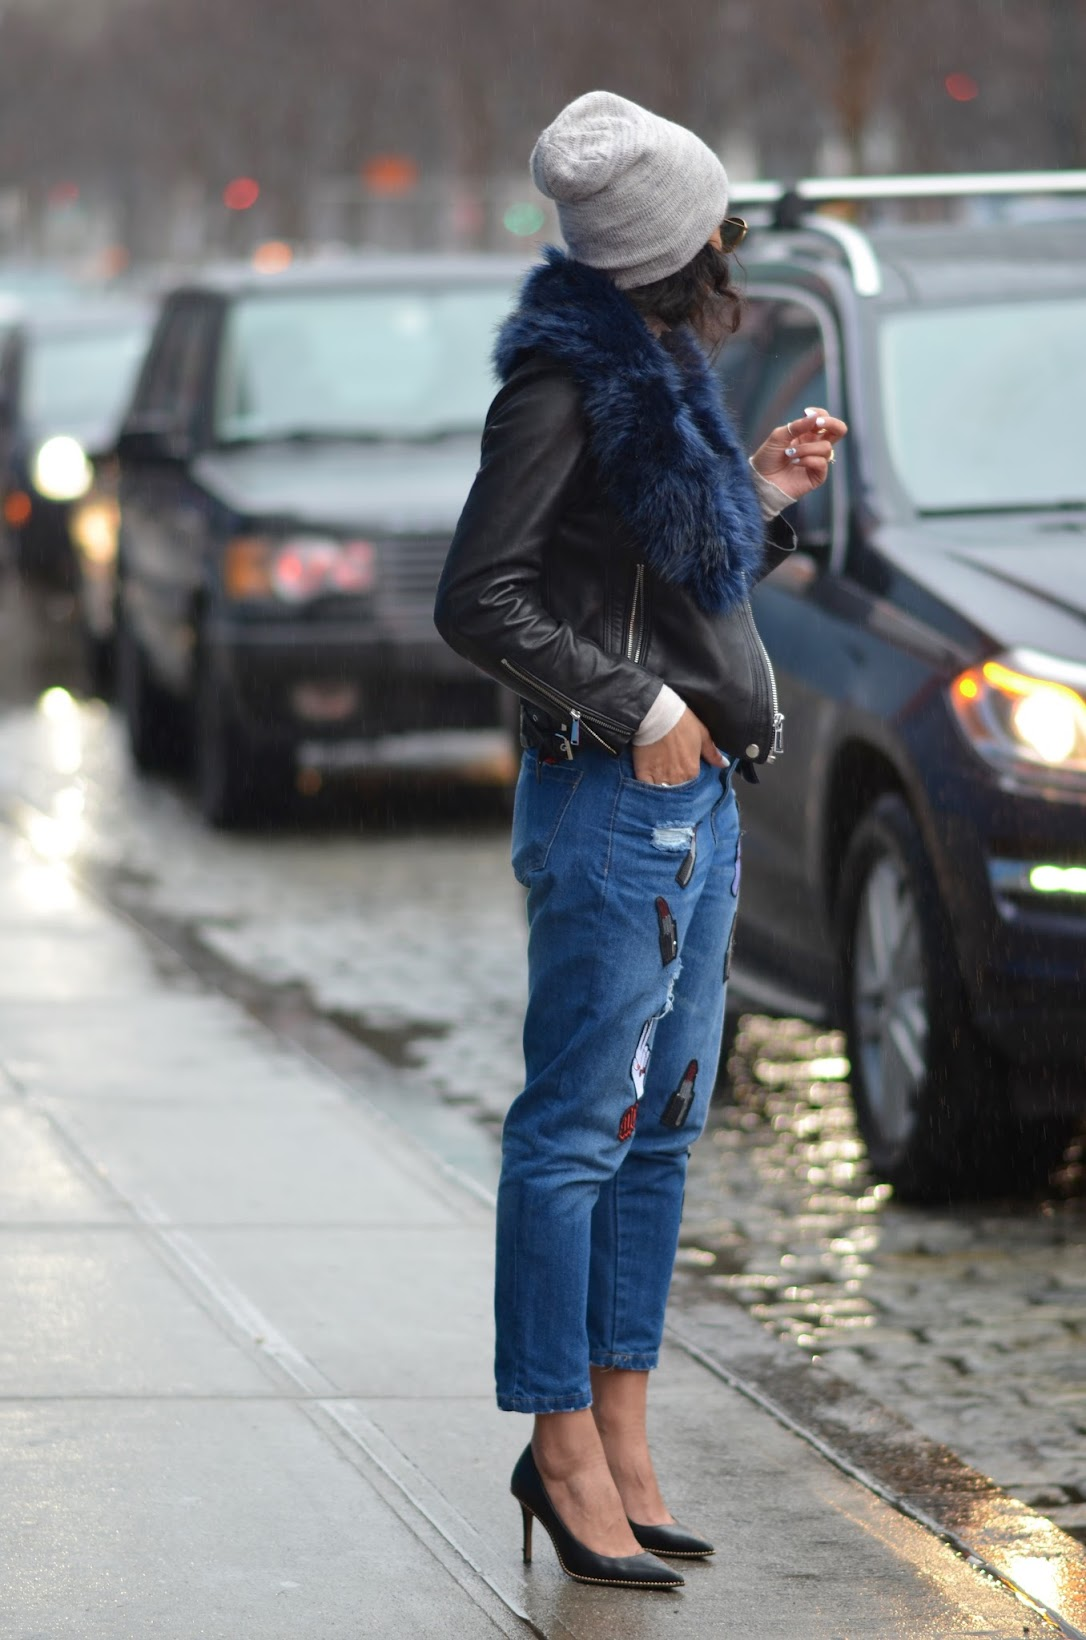 NYFW, faux fur, Coach moto jacket, 90's patch denim, mom jeans, how to wear mom jeans, winter at NYFW